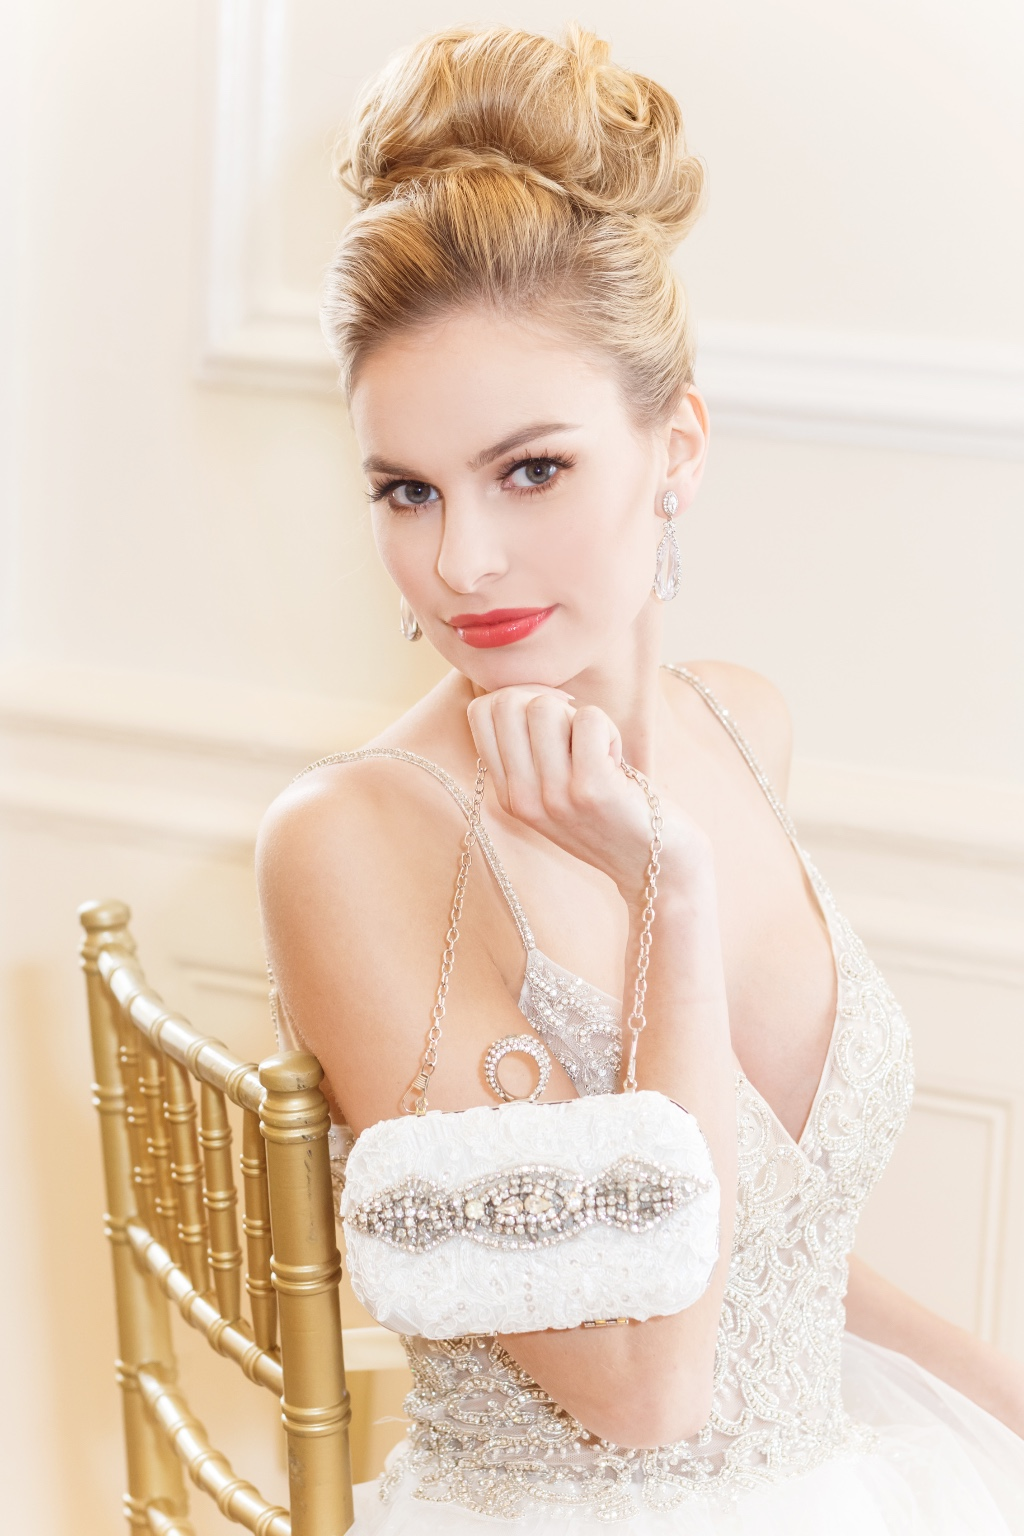 Couture bridal clutch that has all the glamorous details